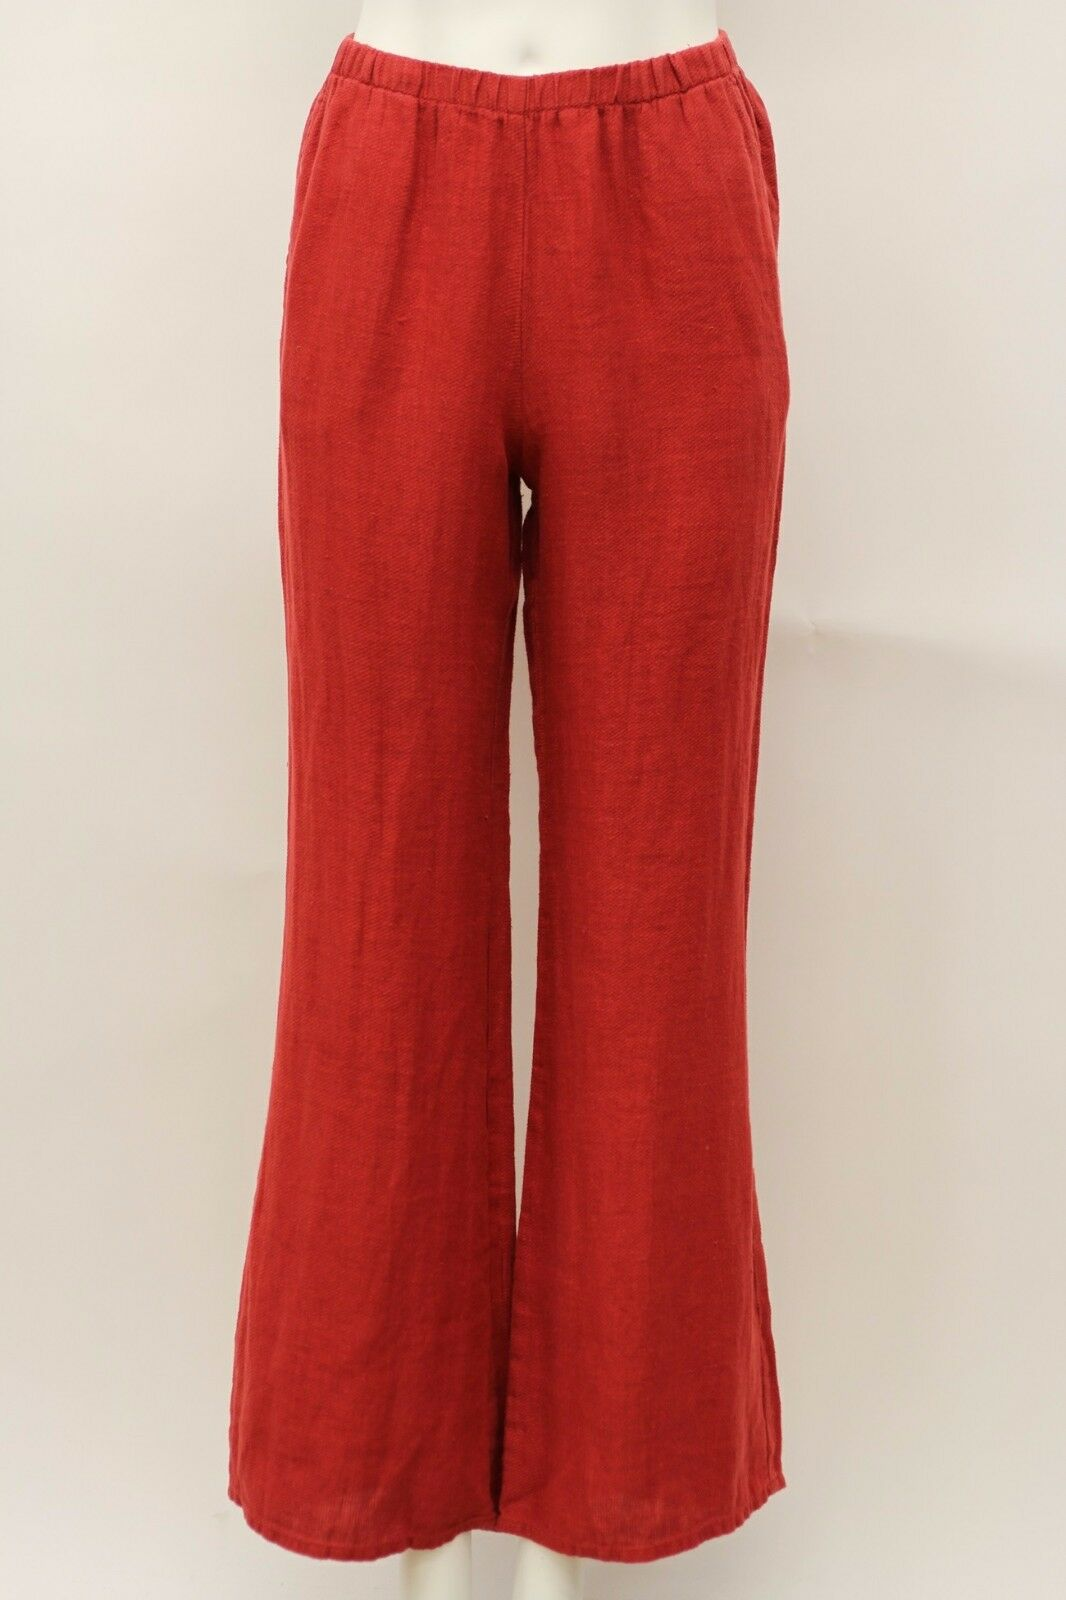 FLAX SELECT LINEN StiefelLEG IT LONG WIDE LEG FLARE PANT rot CHERRY TWILL SMALL